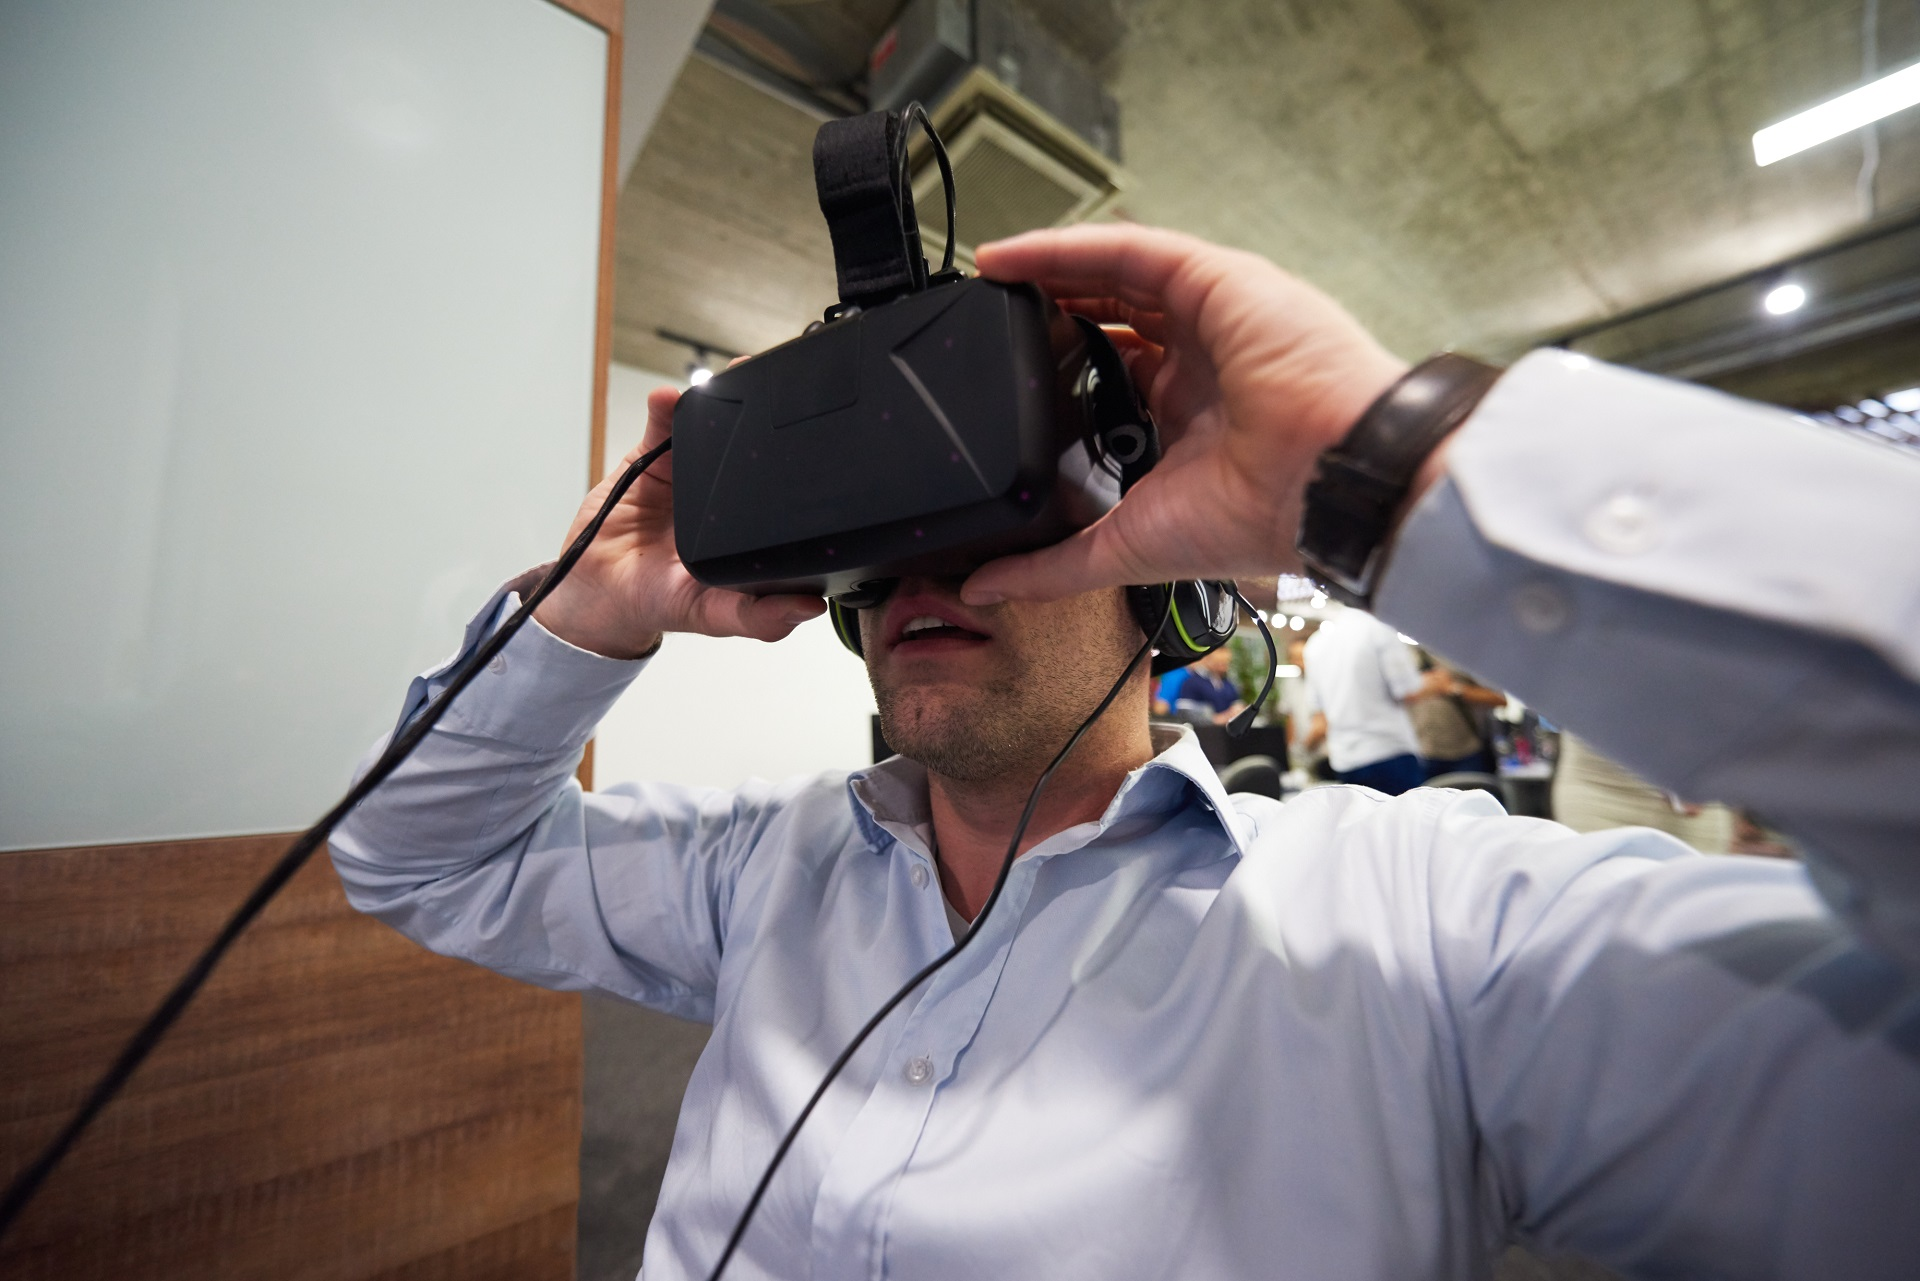 Virtual reality can be a highly engaging tool for safety training